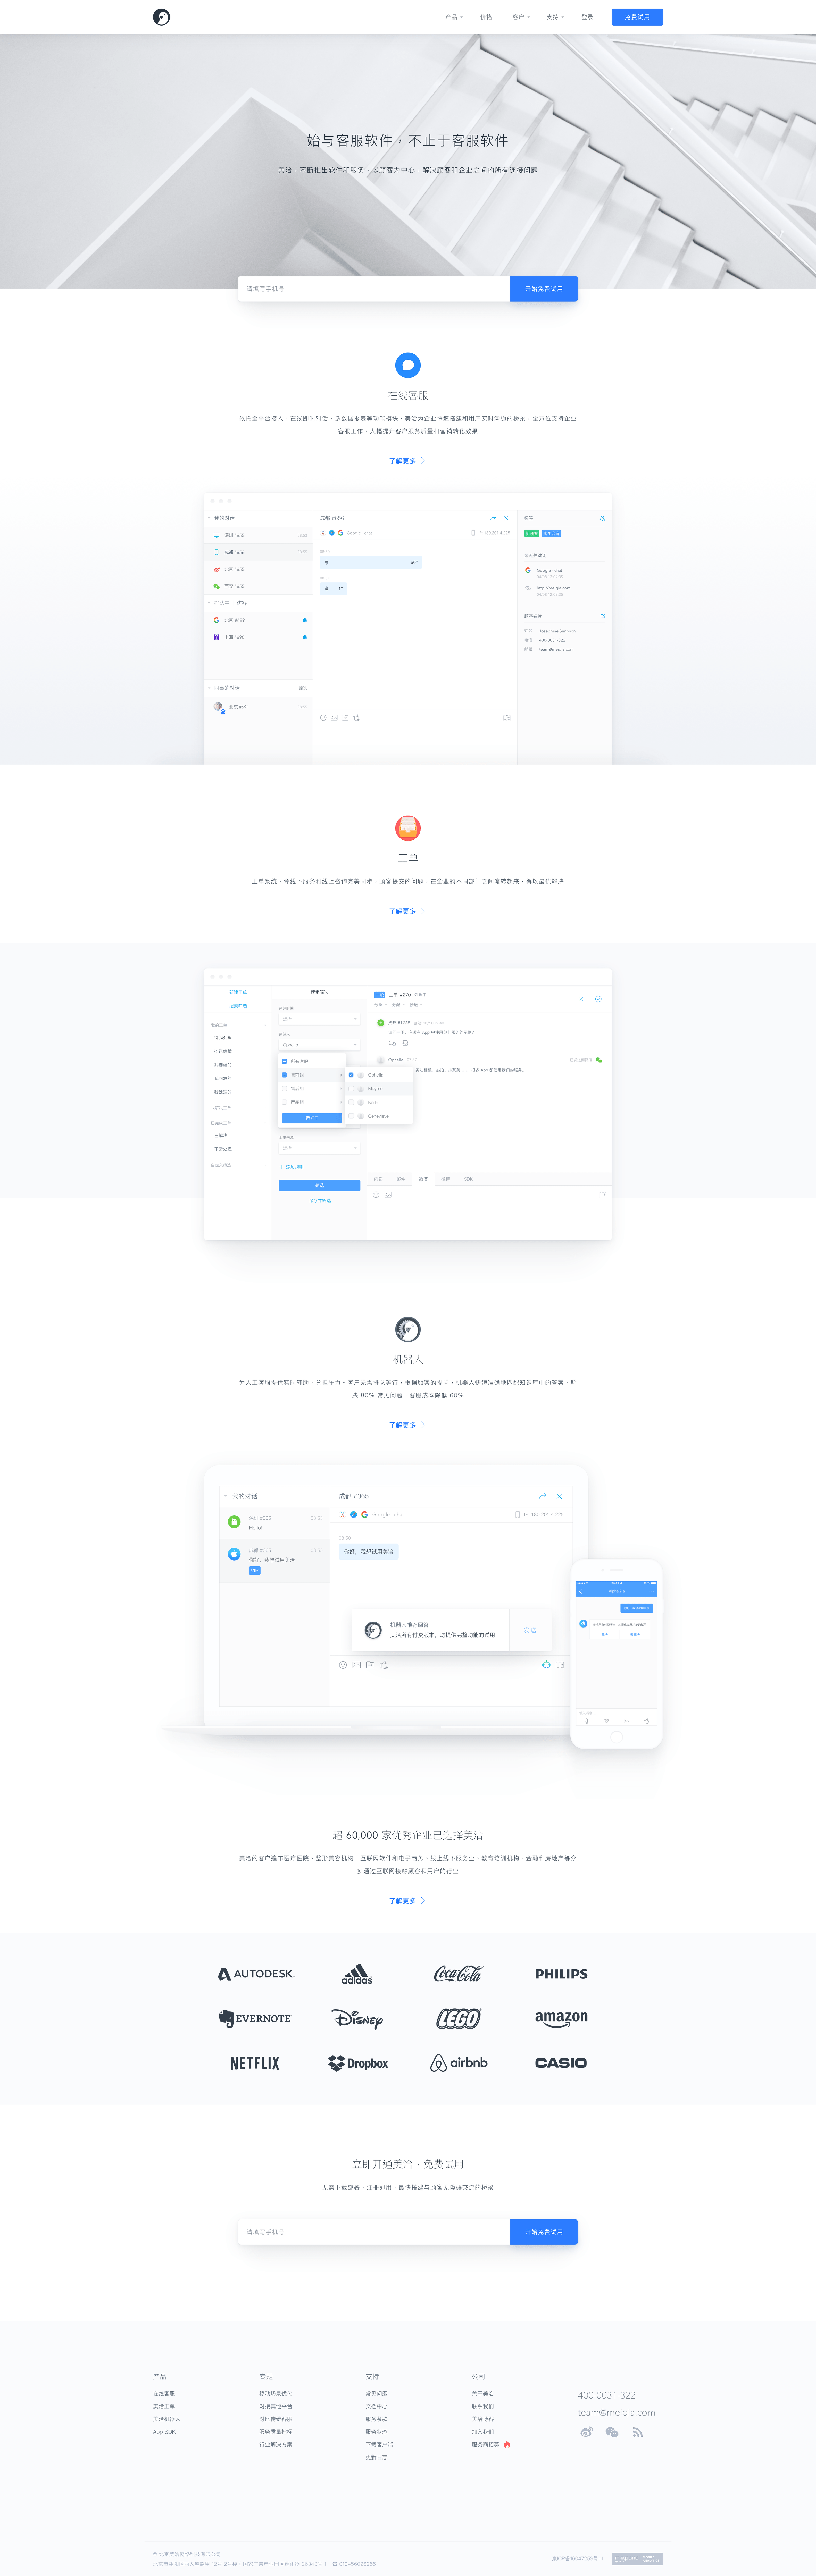 Meiqia product page